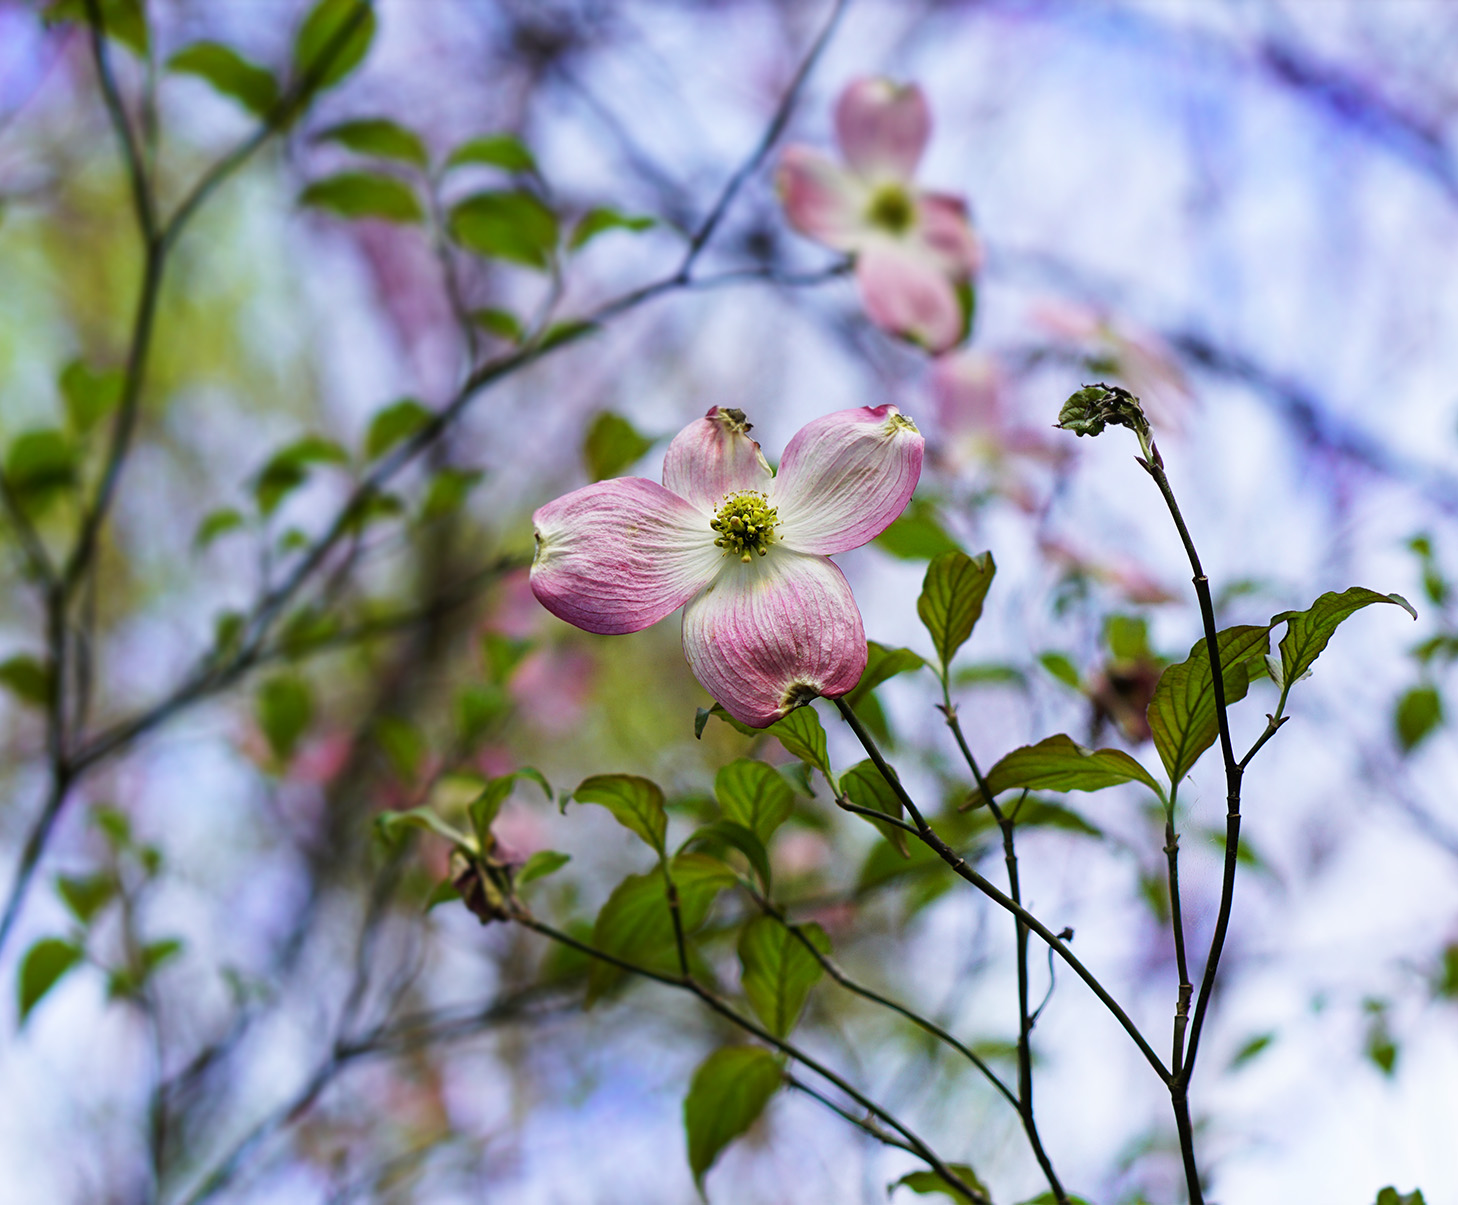 88. dogwood paints the sky, by k. bos